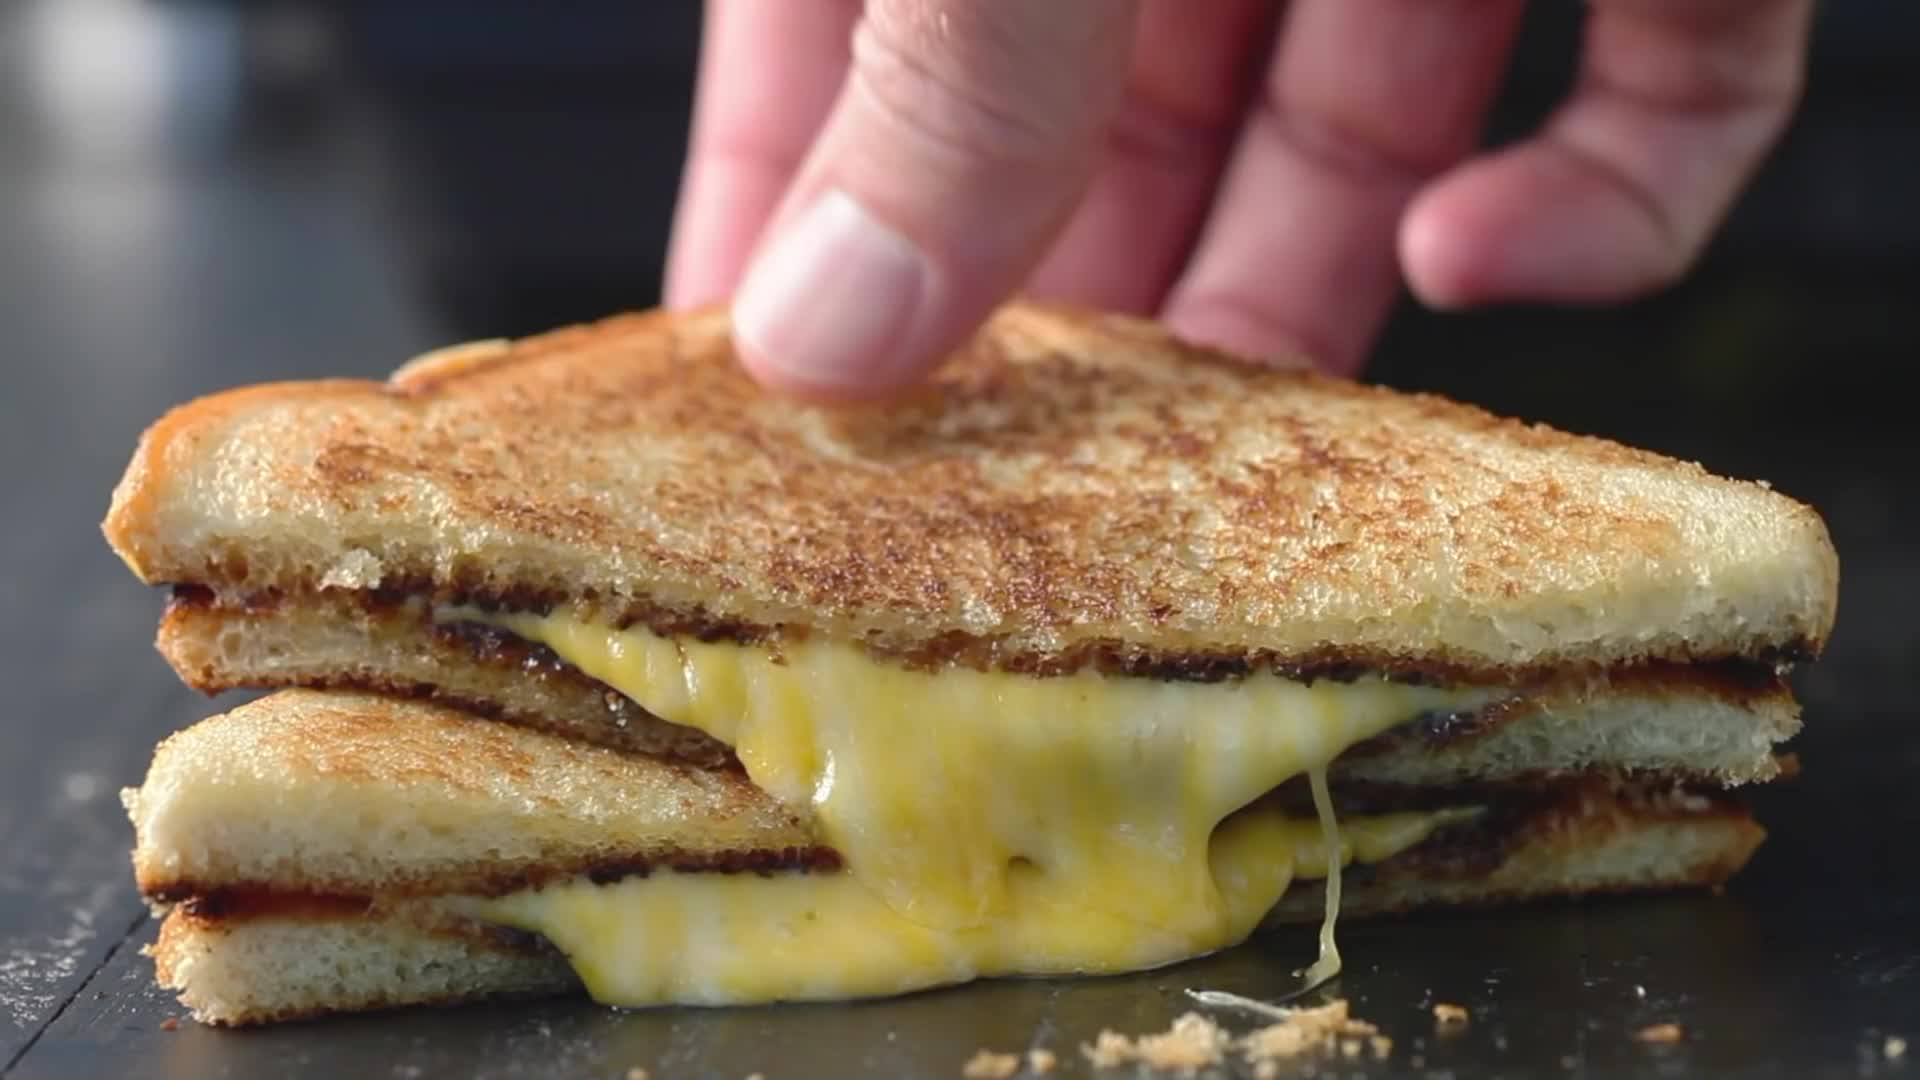 camping, cheese, chowhound, easy grilled cheese, easy grilled cheese recipe, easy recipes, grilled cheese recipe, recipe, recipes, summer, vegetarian, Easy Grilled Cheese Recipe GIFs